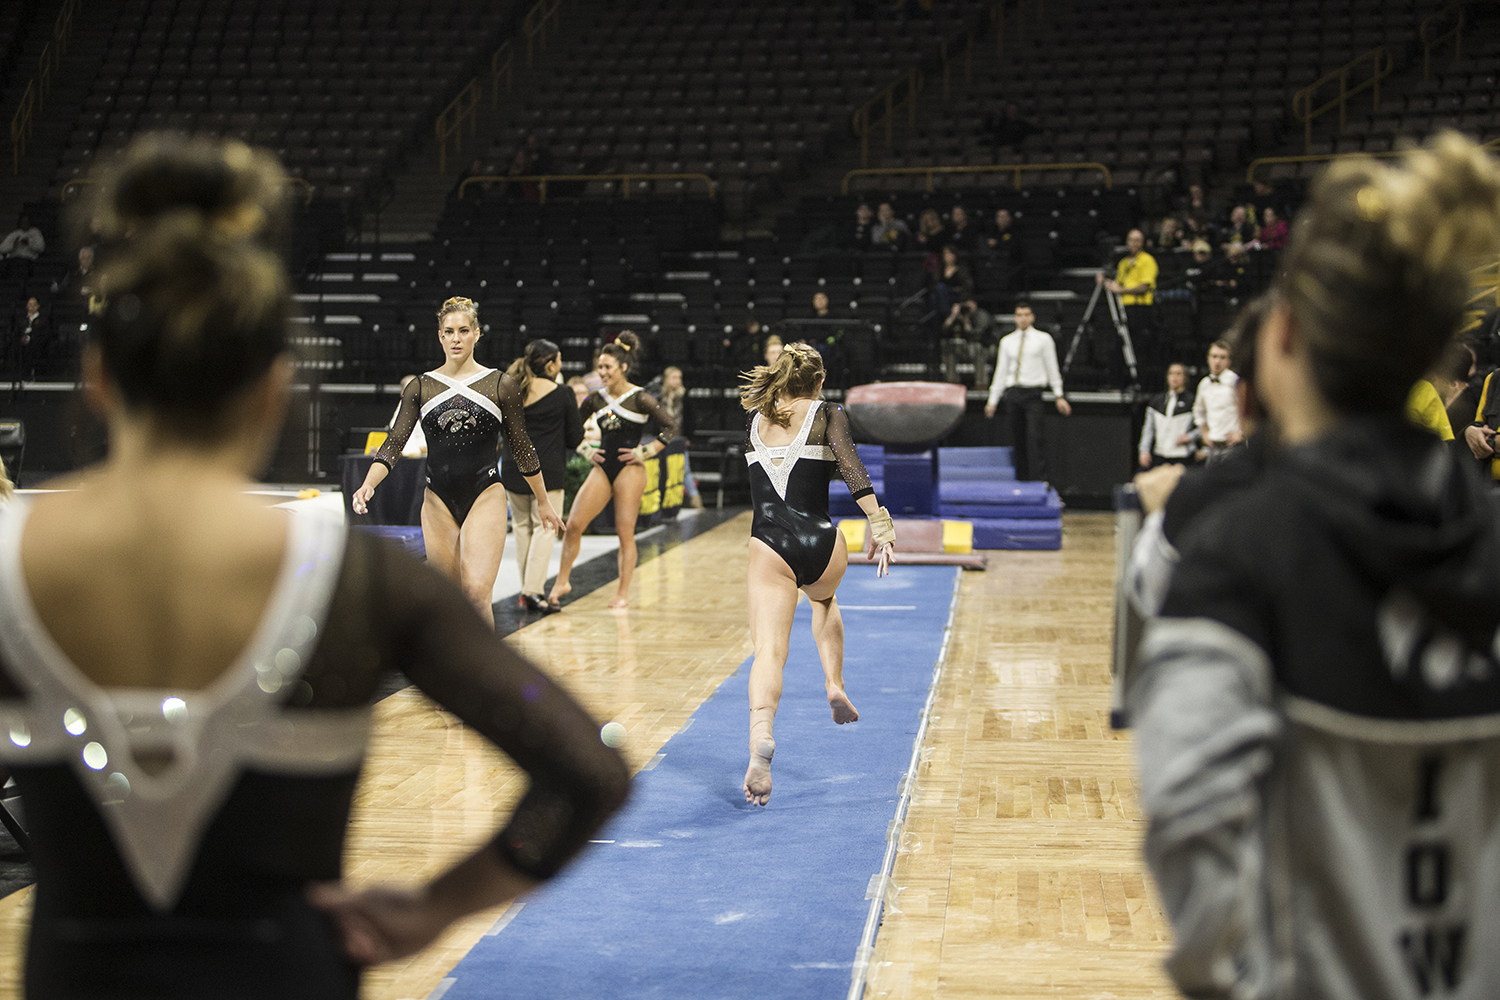 Iowa+gymnast+Charlotte+Sullivan+competes+on+the+vault+on+January+26%2C+2019.+The+Hawkeyes+defeated+the+Scarlet+Knights+194.575+to+191.675.+